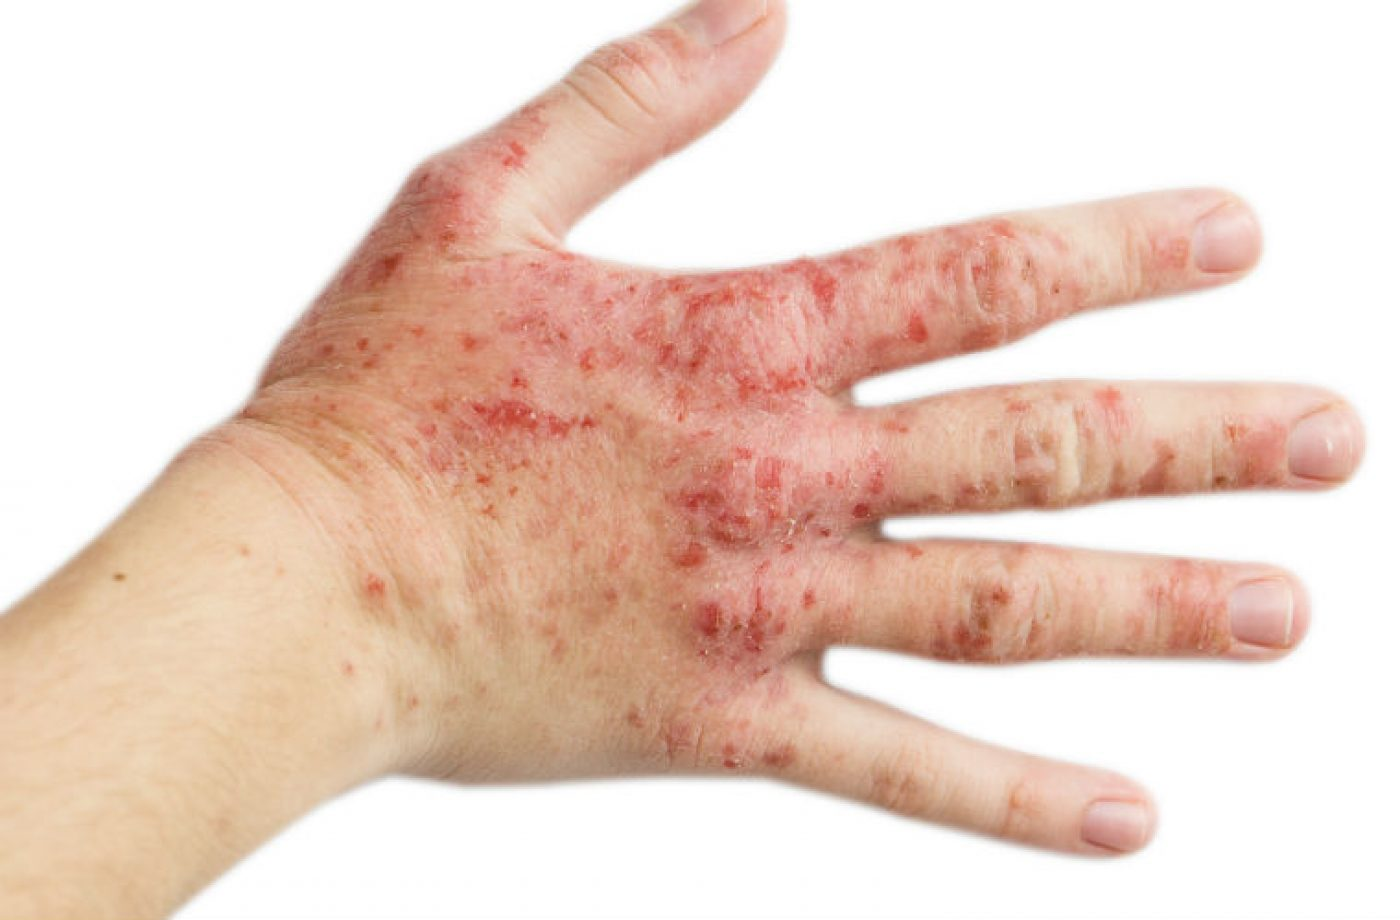 Disposable gloves could cause more harm than good, say experts